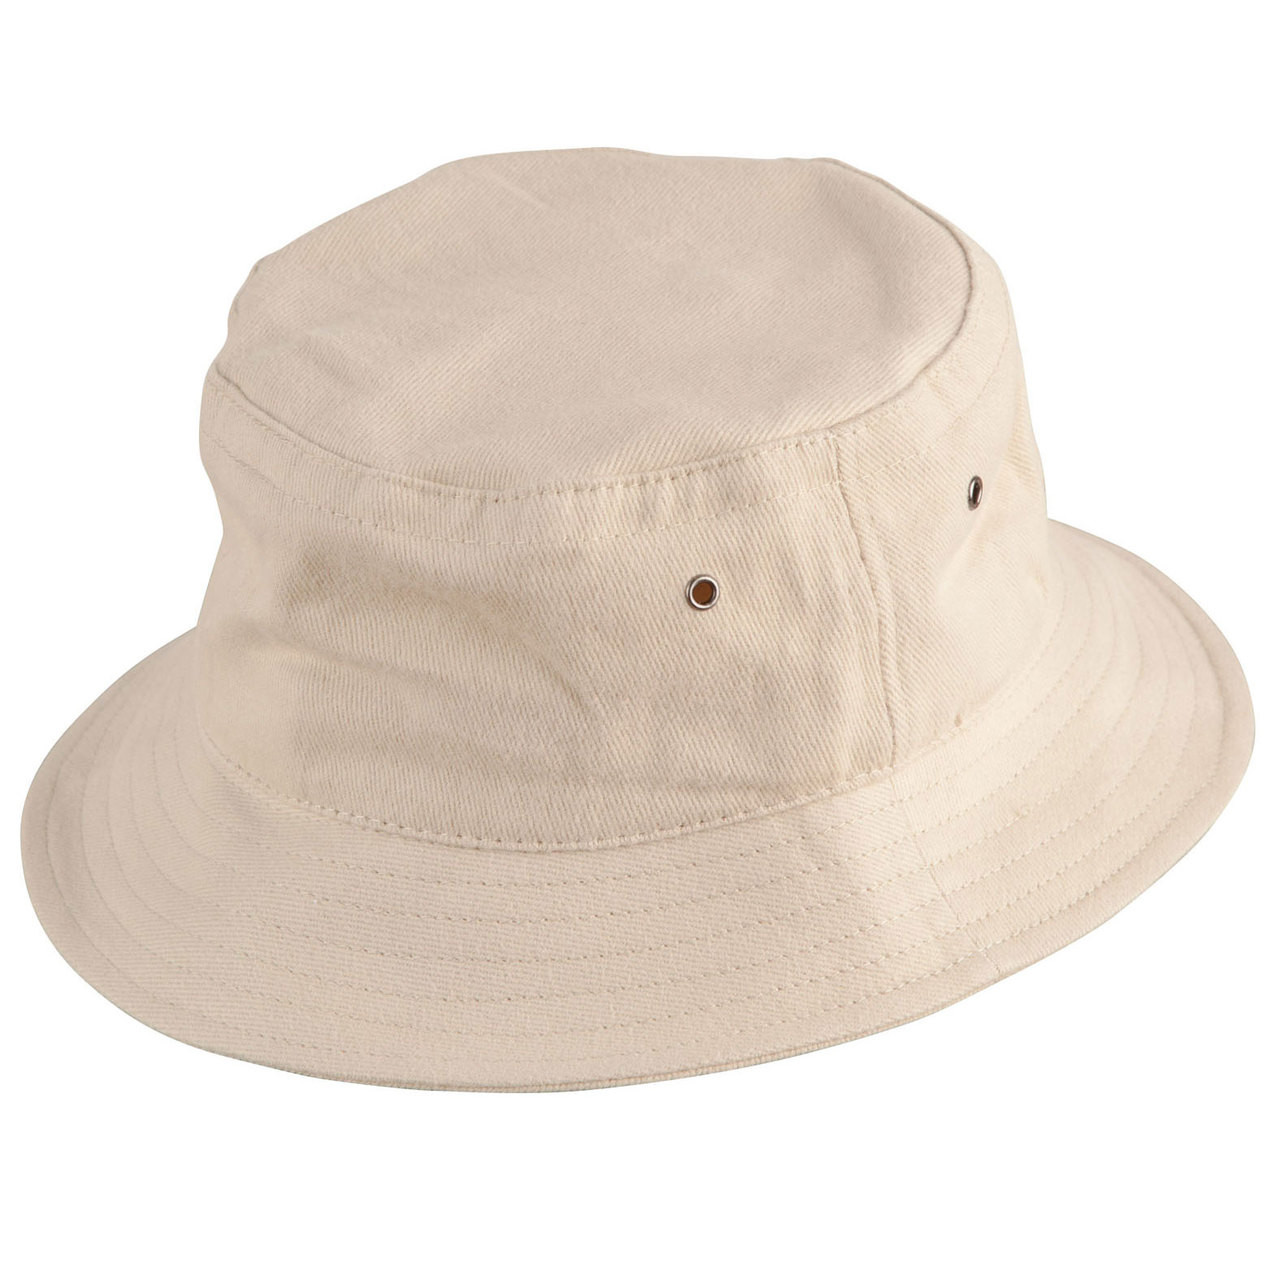 Airbrush Bucket Hat 003 Customise with your own name and favorite colours!